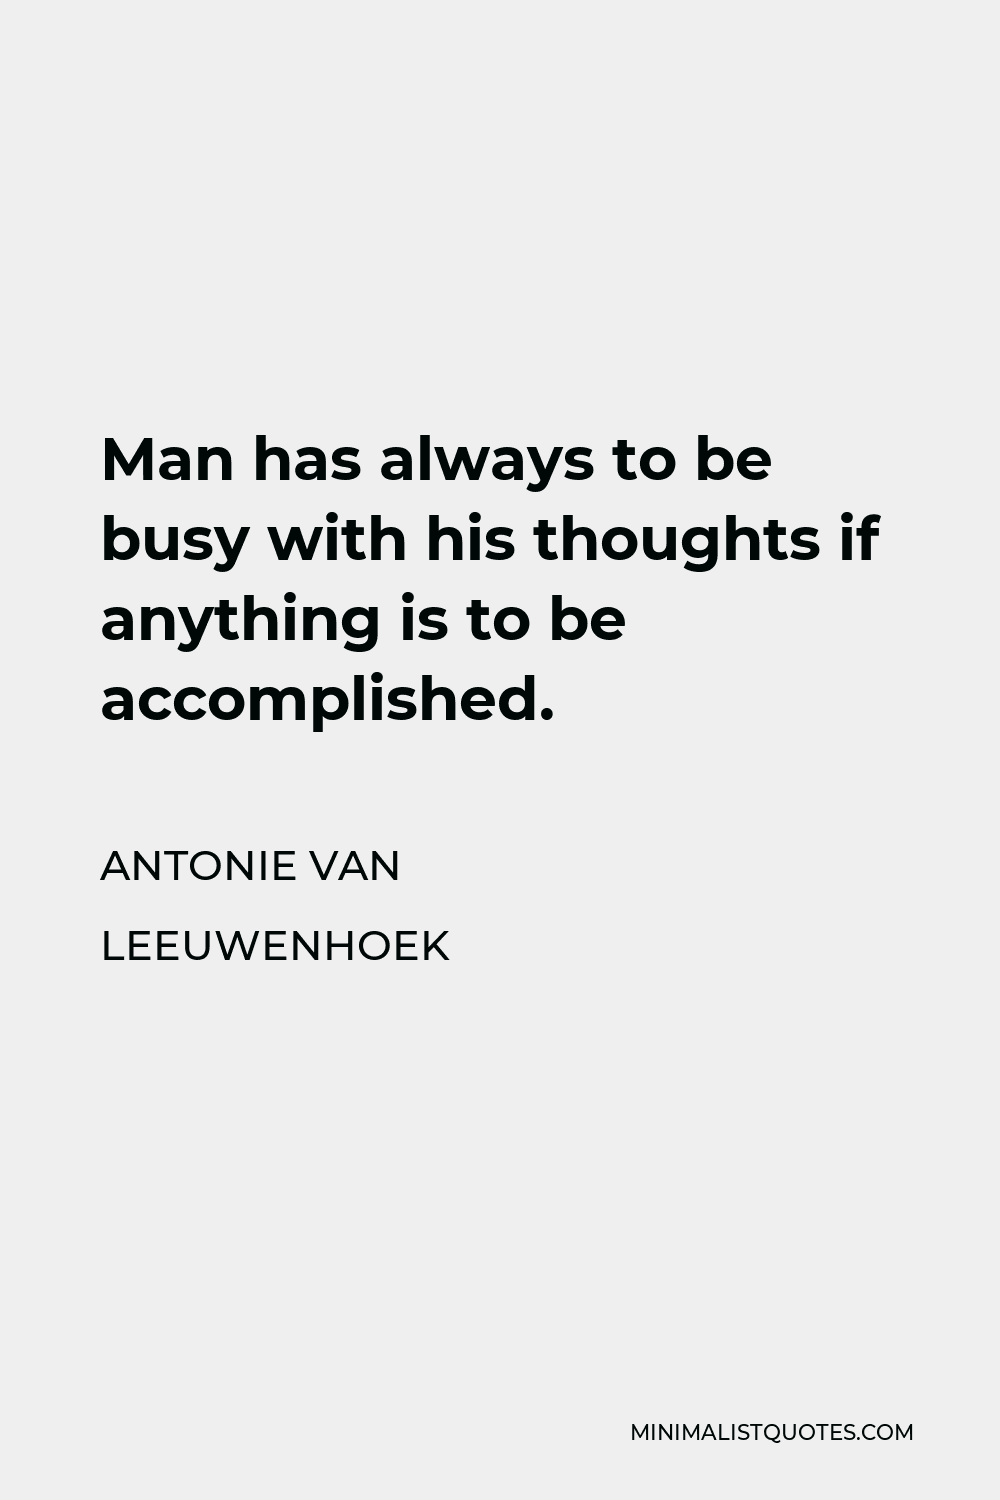 Antonie van Leeuwenhoek Quote - Man has always to be busy with his thoughts if anything is to be accomplished.